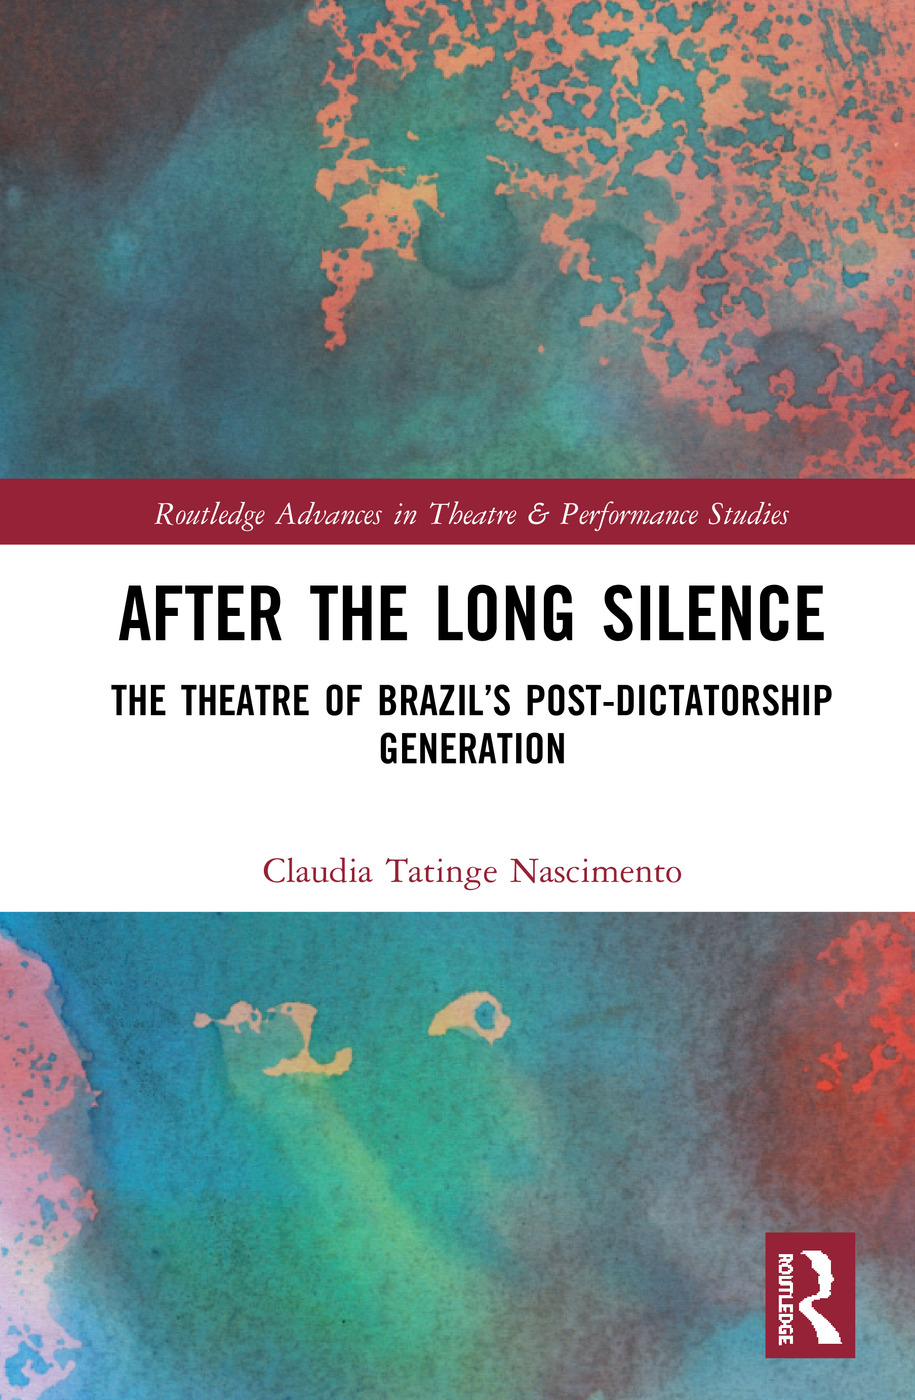 After the Long Silence: The Theatre of Brazil's Post-Dictatorship Generation book cover